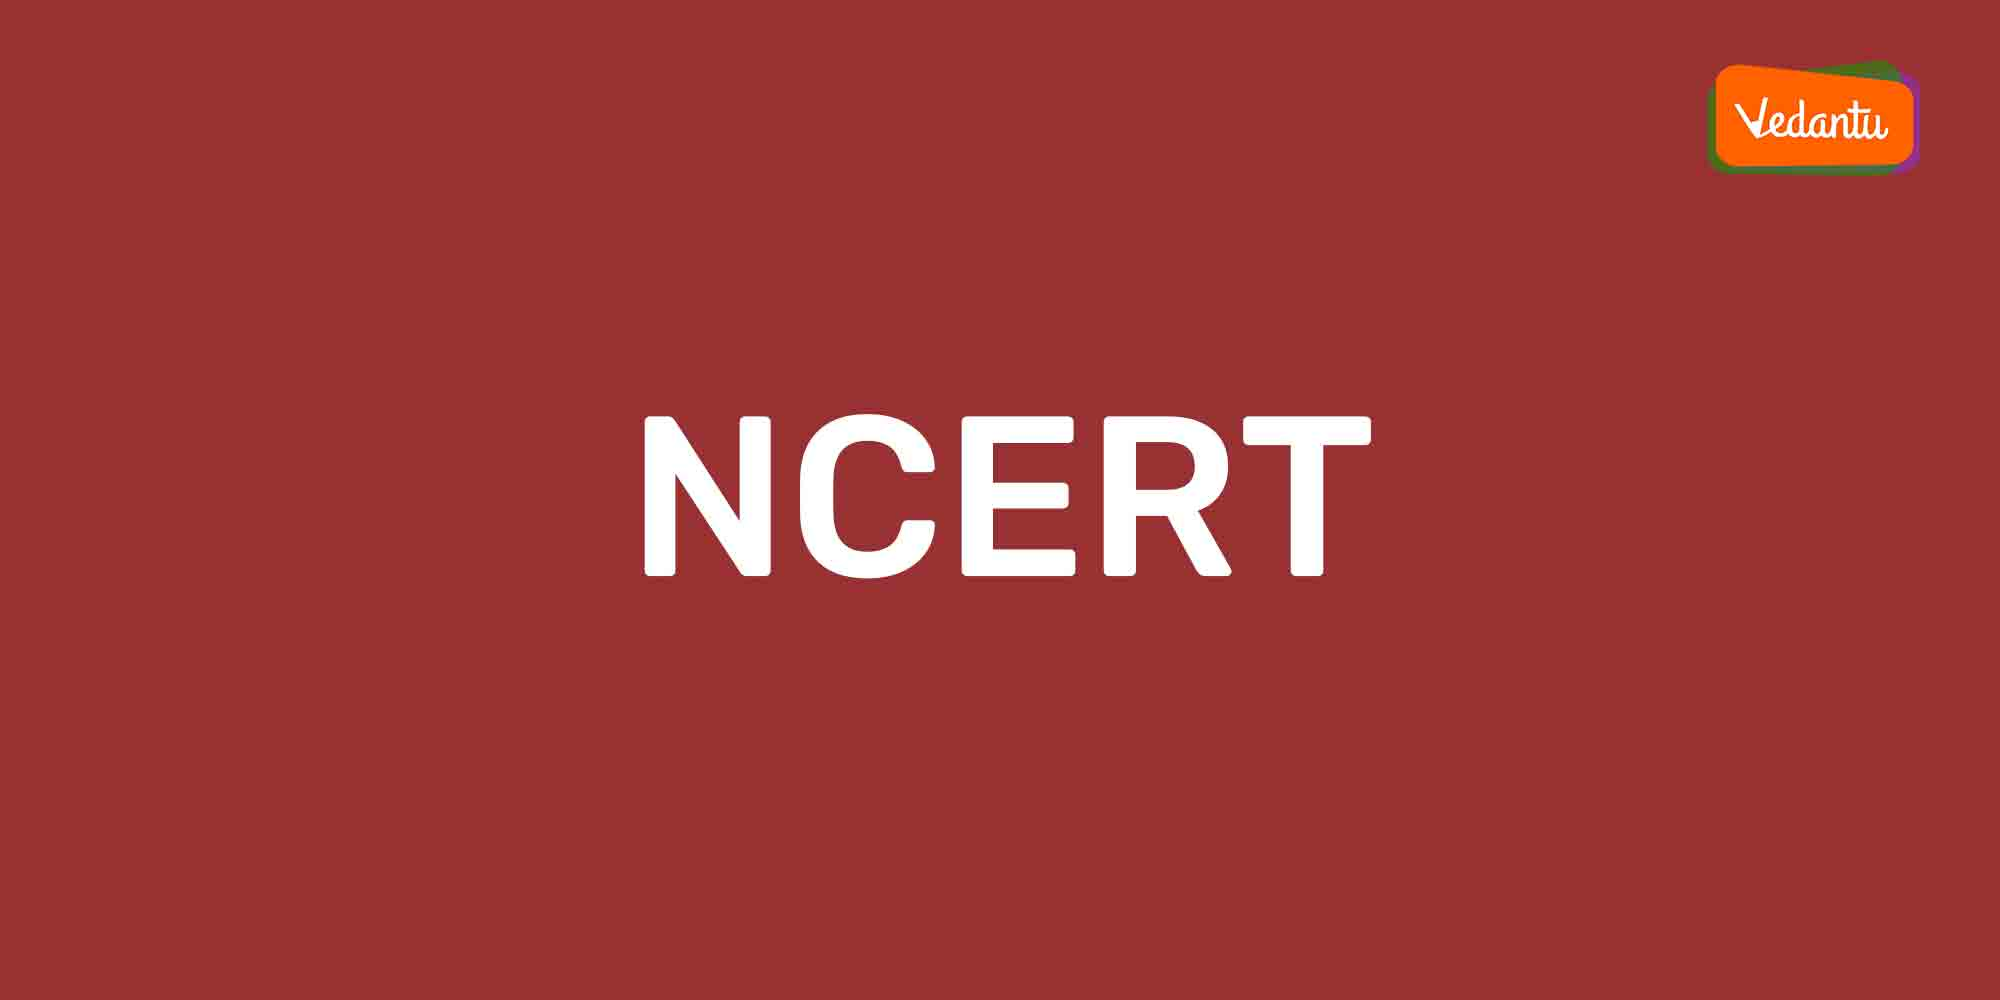 Does the NCERT exemplar contain NCERT textbook solutions?